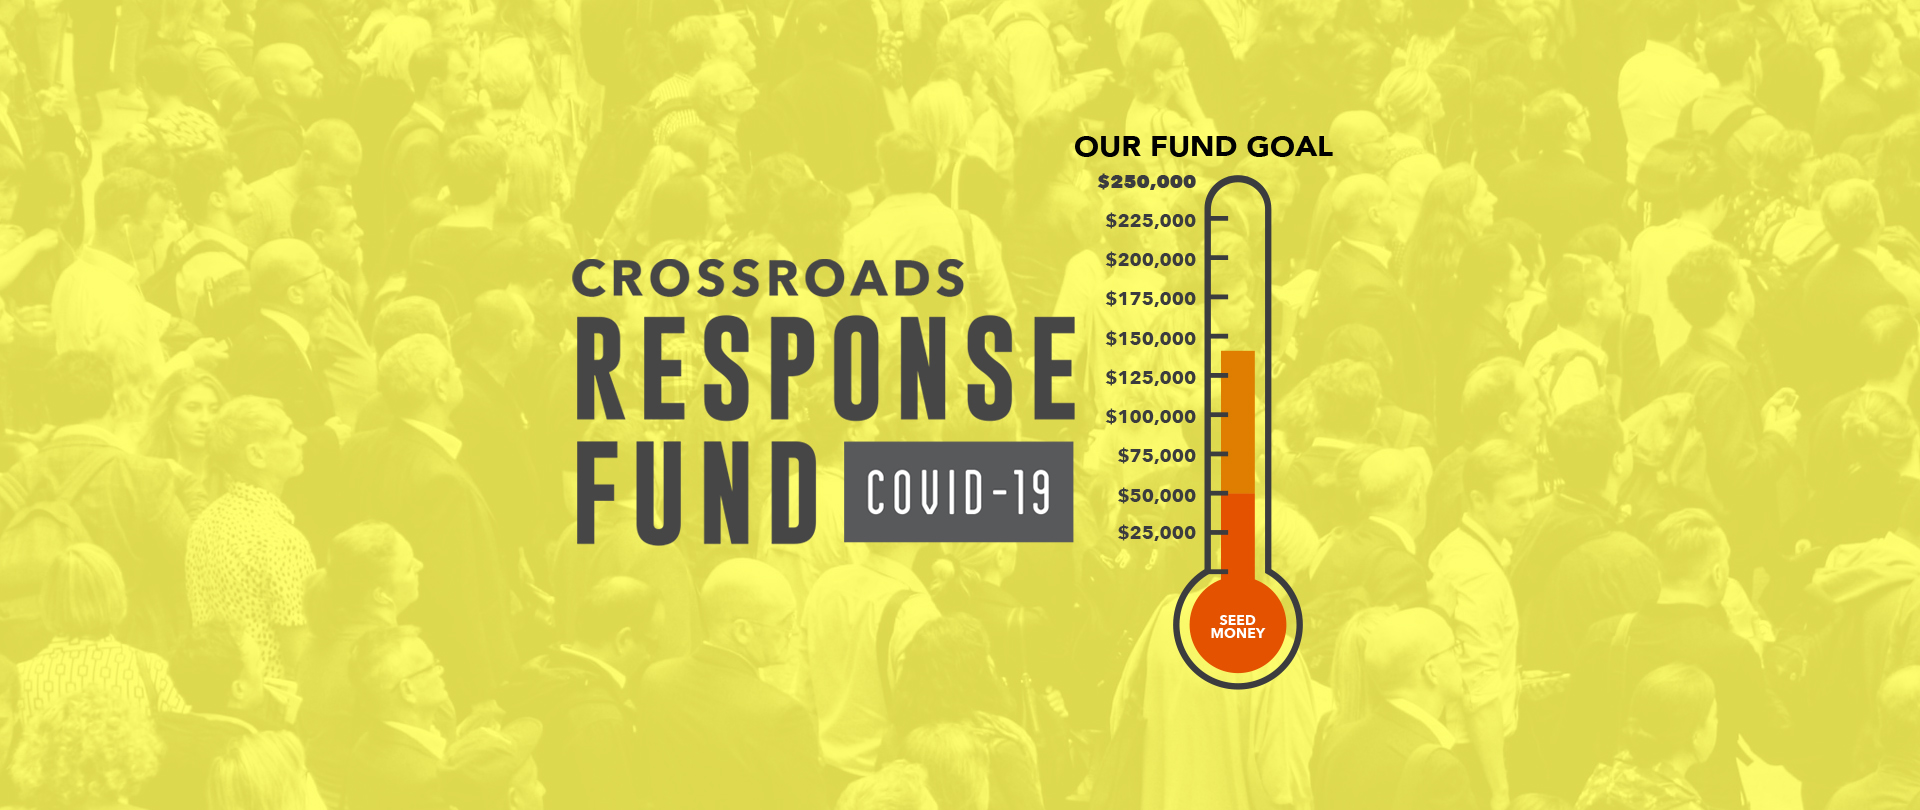 Crossroads Response Fund